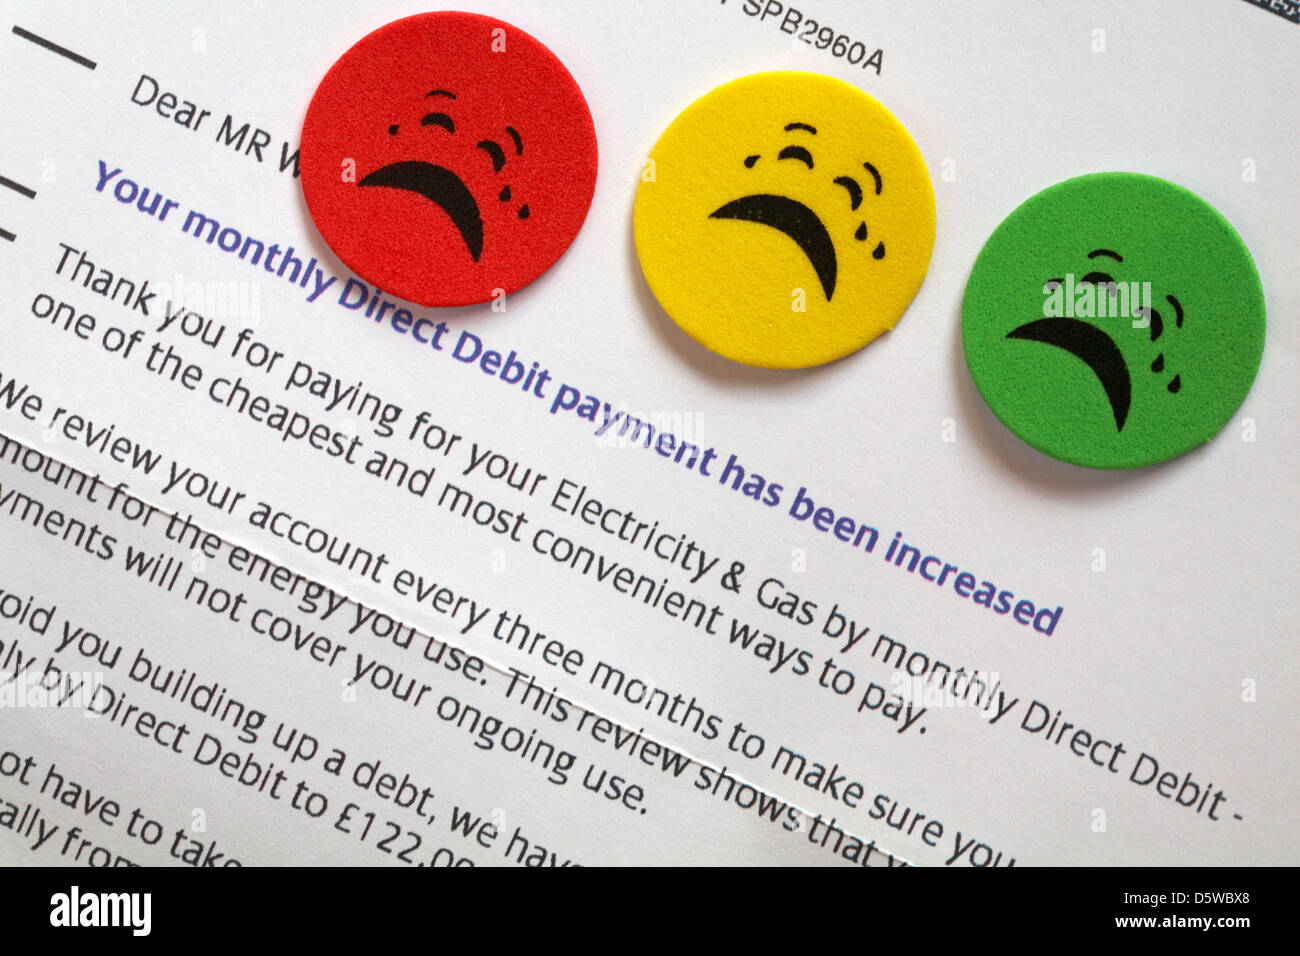 Letter from utility company advising monthly direct debit payment has been increased for electricity and gas with - Stock Image